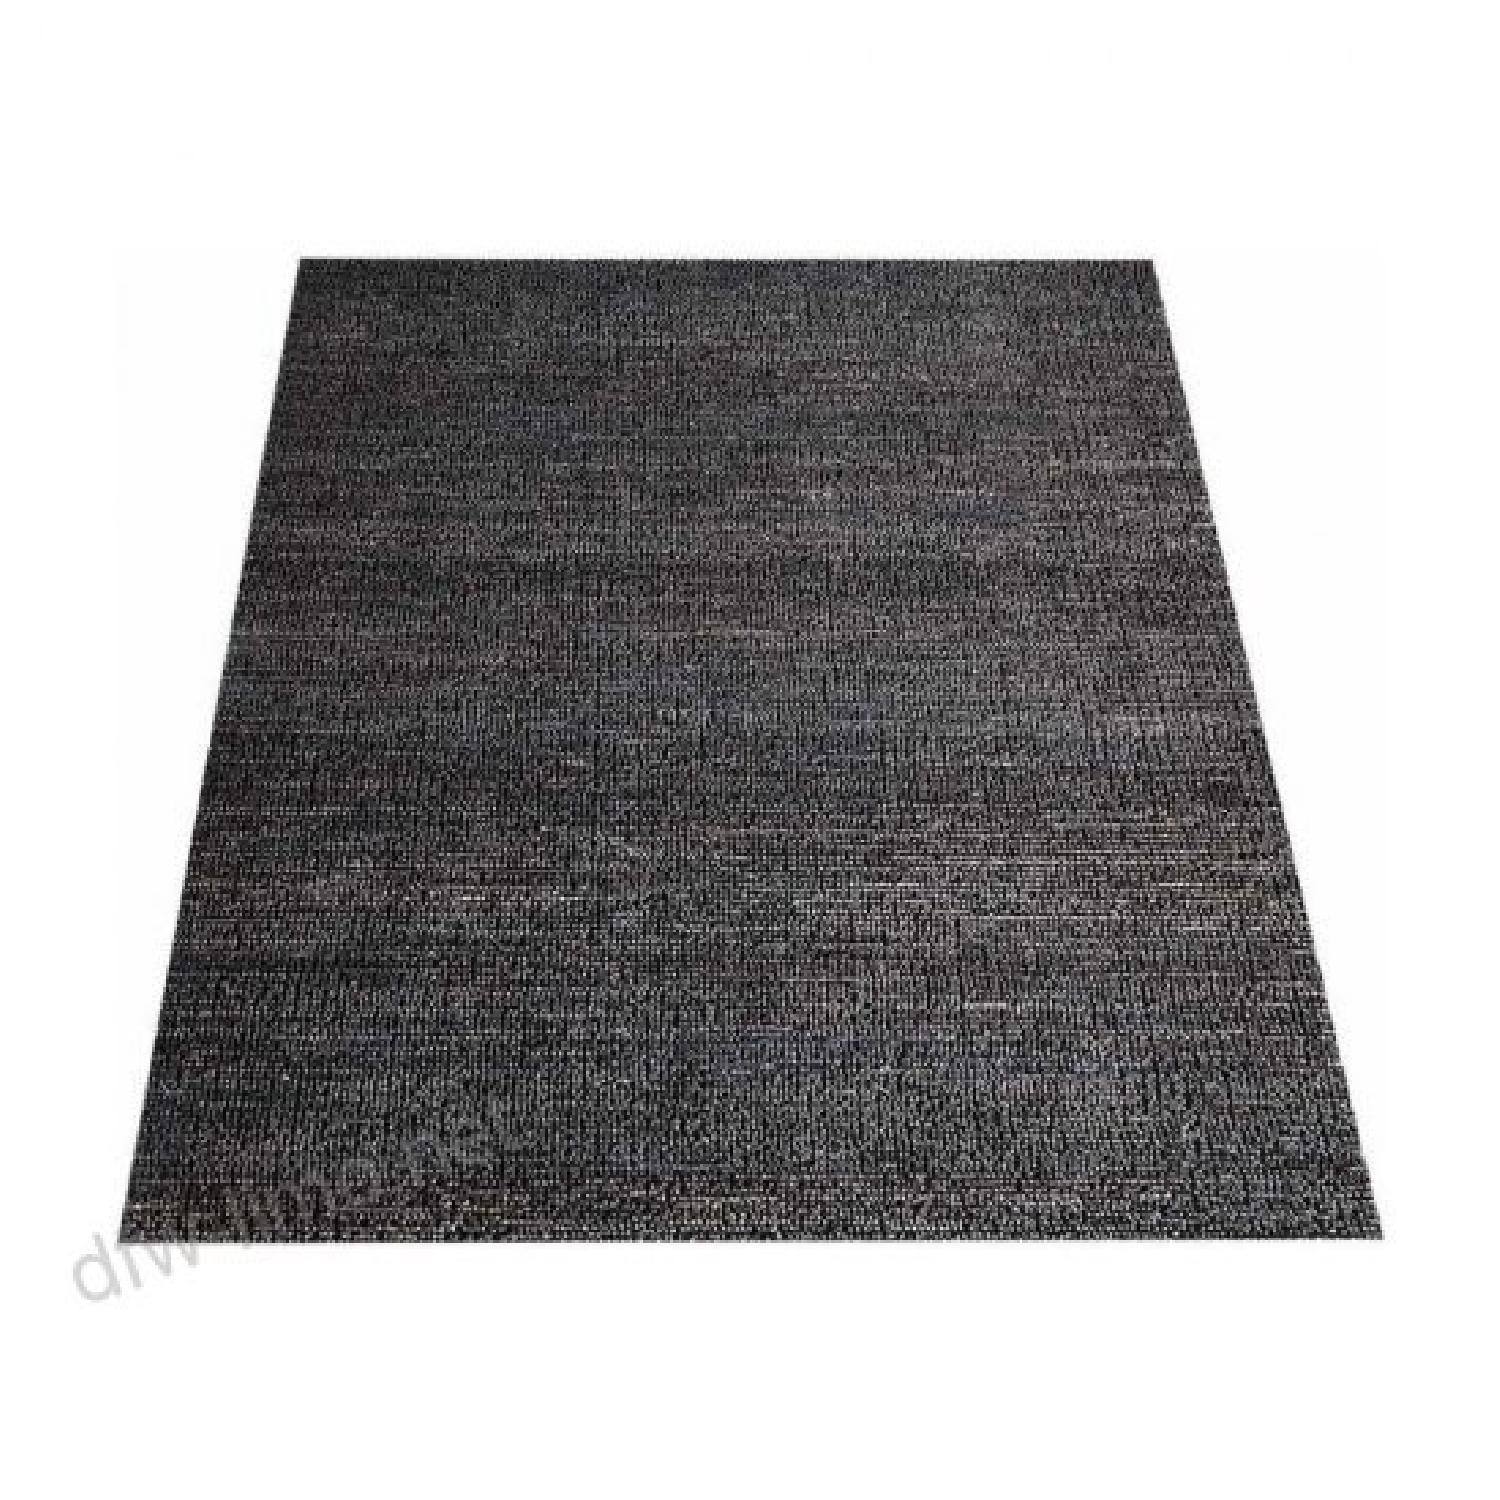 Rugs USA Charcoal Jute Area Rug - image-0